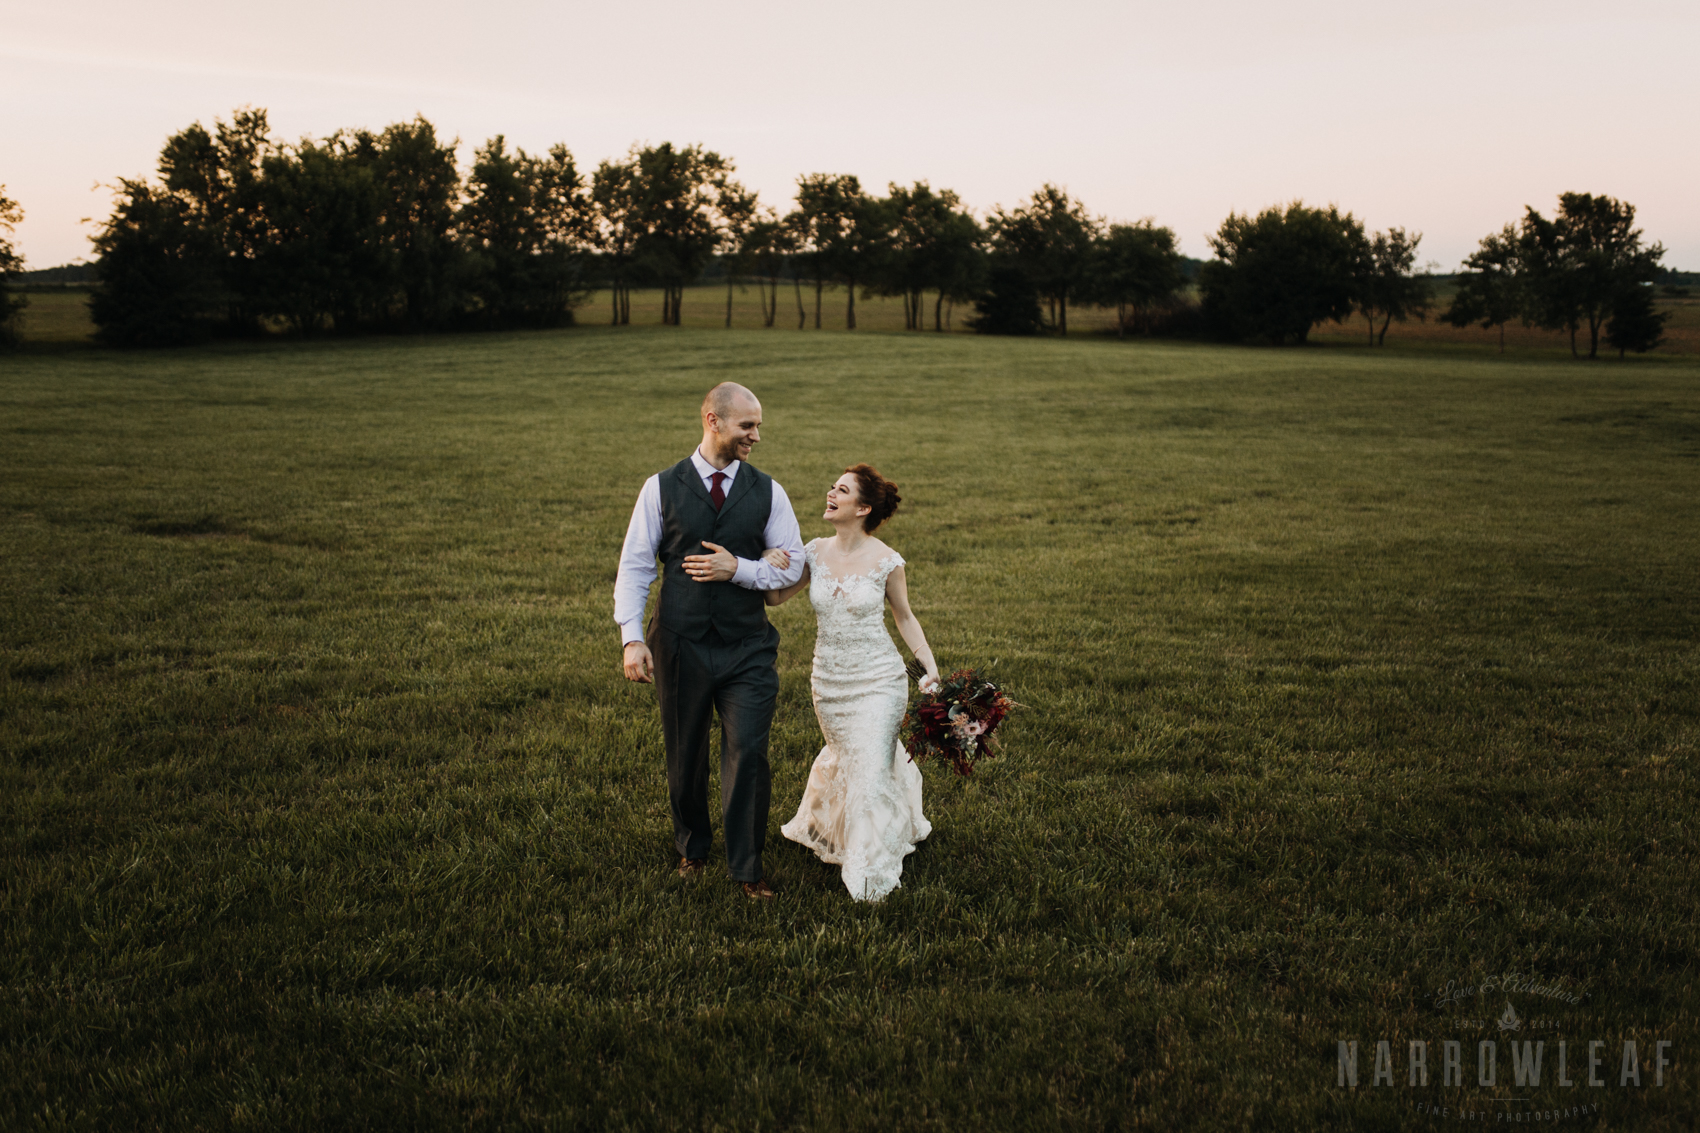 bride-groom-romantic-sunset-photos-rustys-hitching-post-event-center-new-richmond-wi-62.jpg